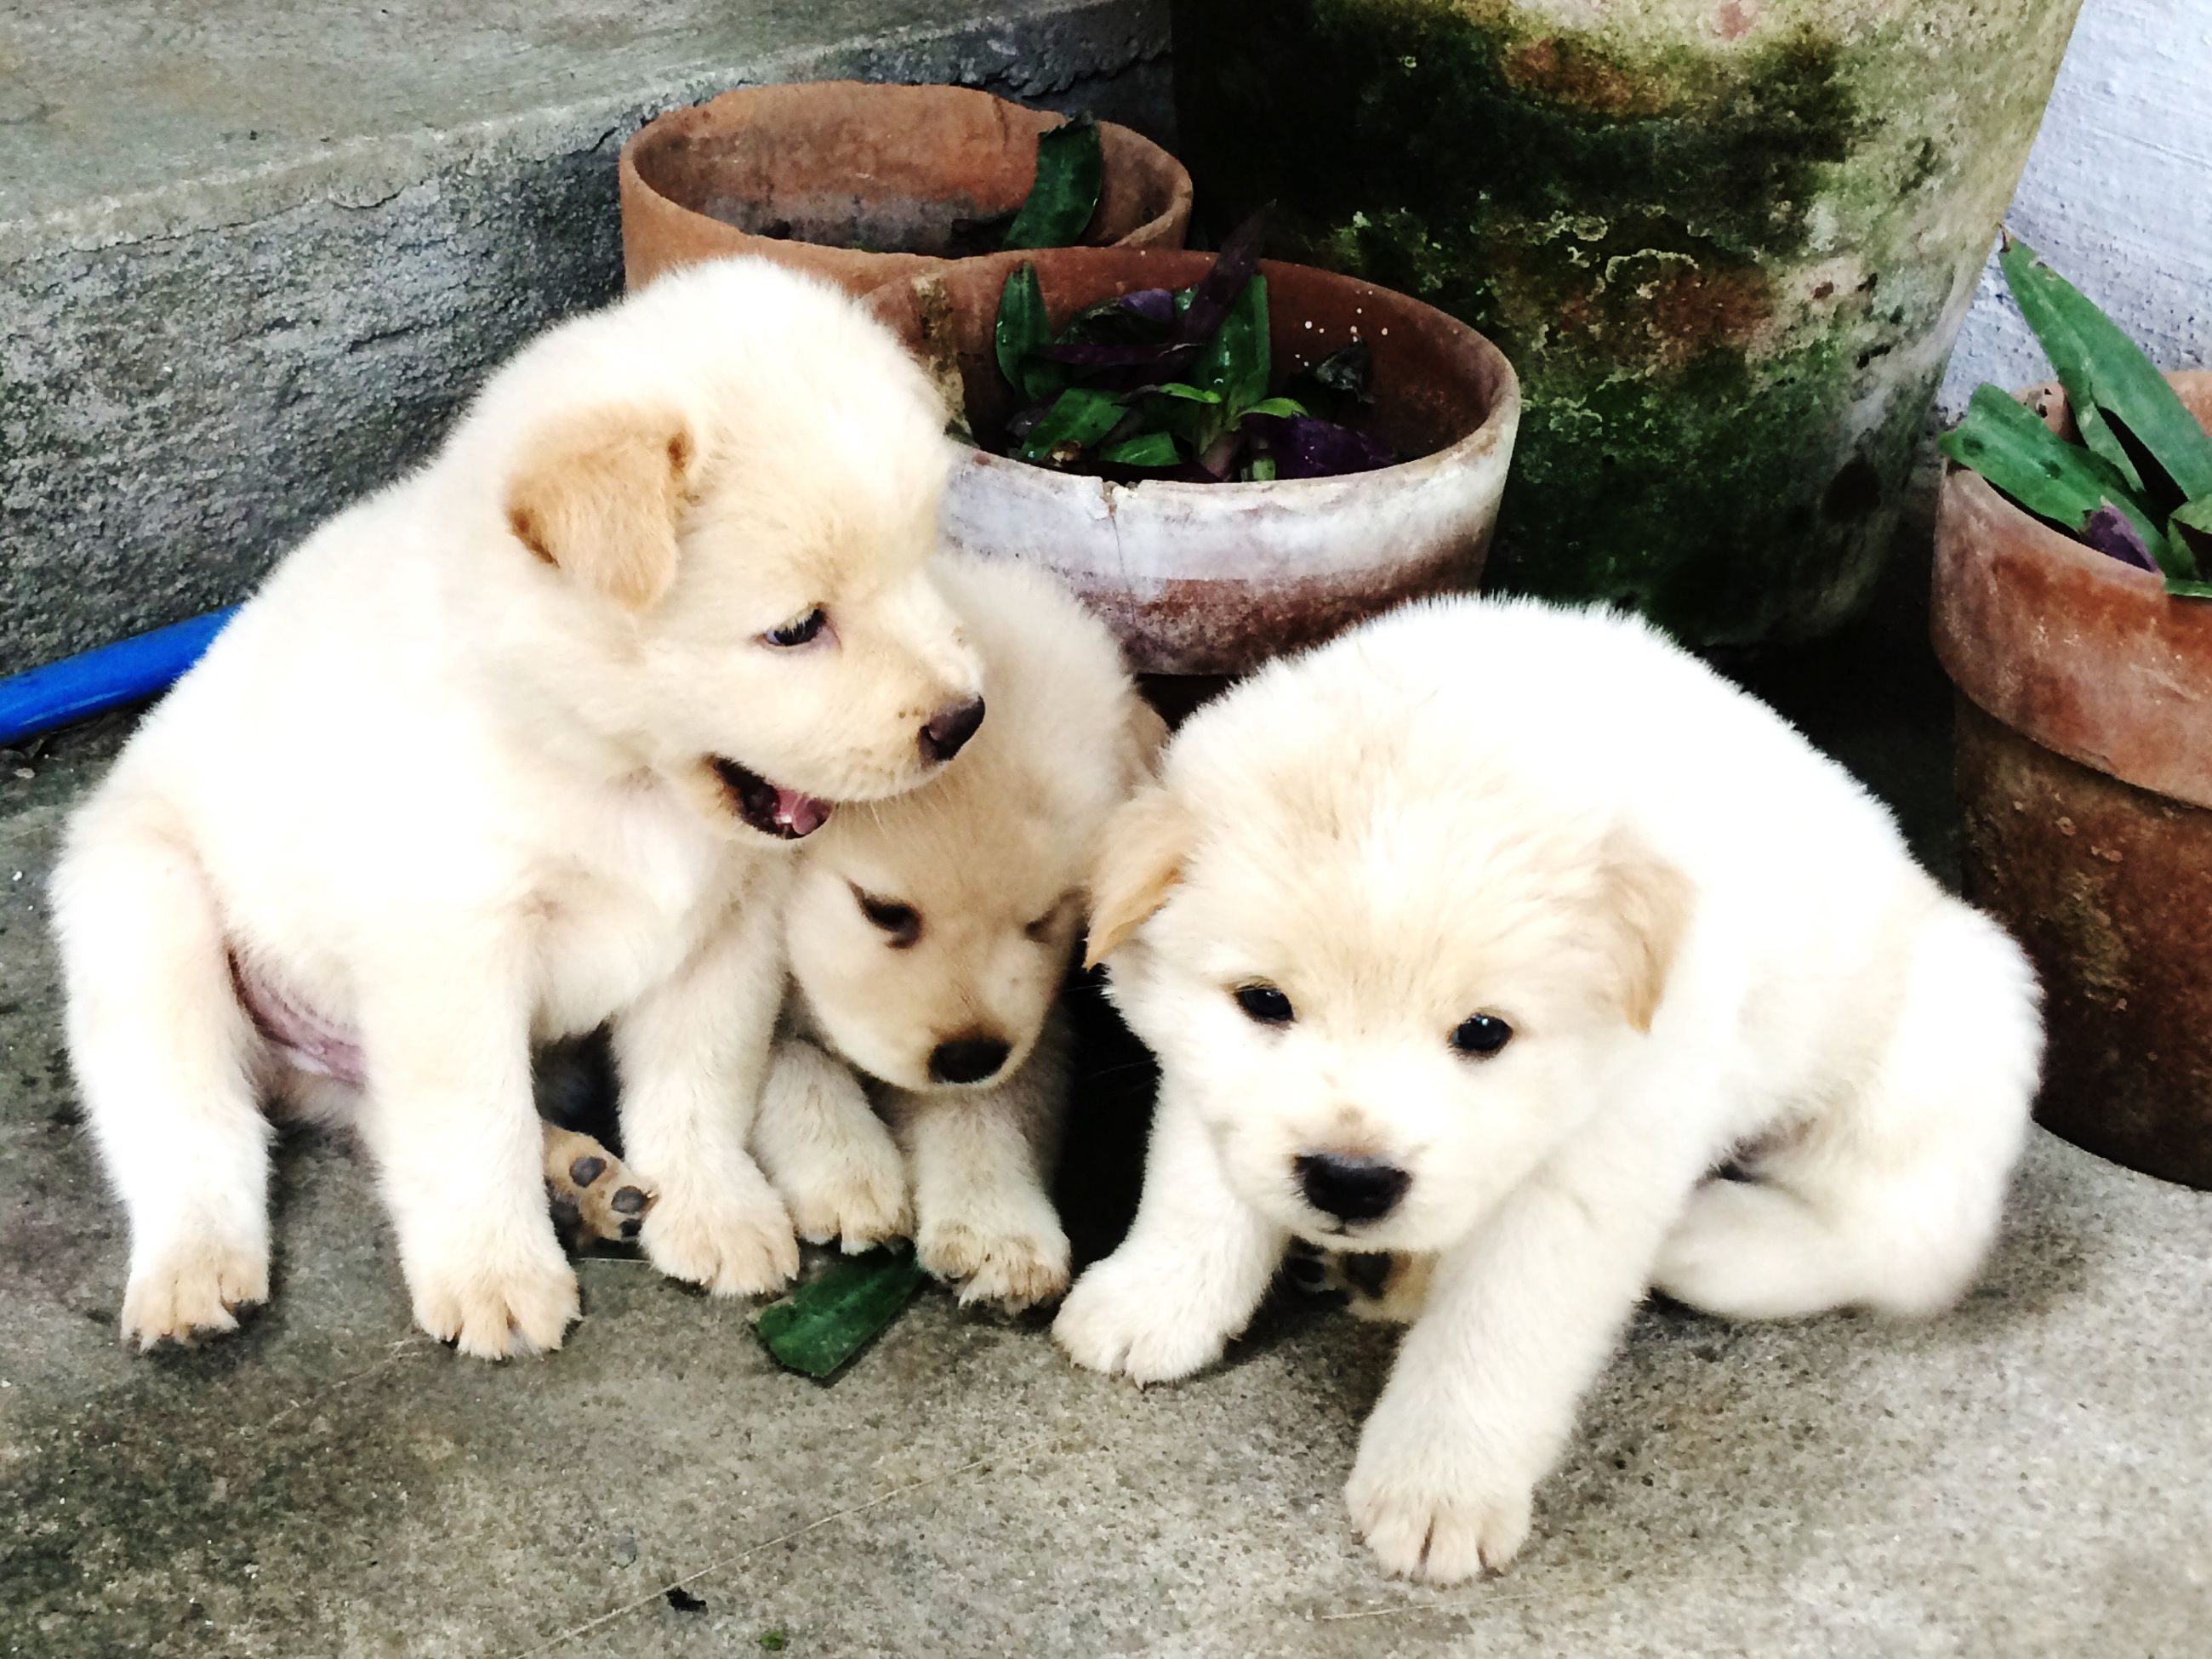 domestic animals, pets, animal themes, mammal, relaxation, high angle view, one animal, dog, two animals, cute, lying down, young animal, looking at camera, resting, togetherness, white color, portrait, puppy, cat, domestic cat